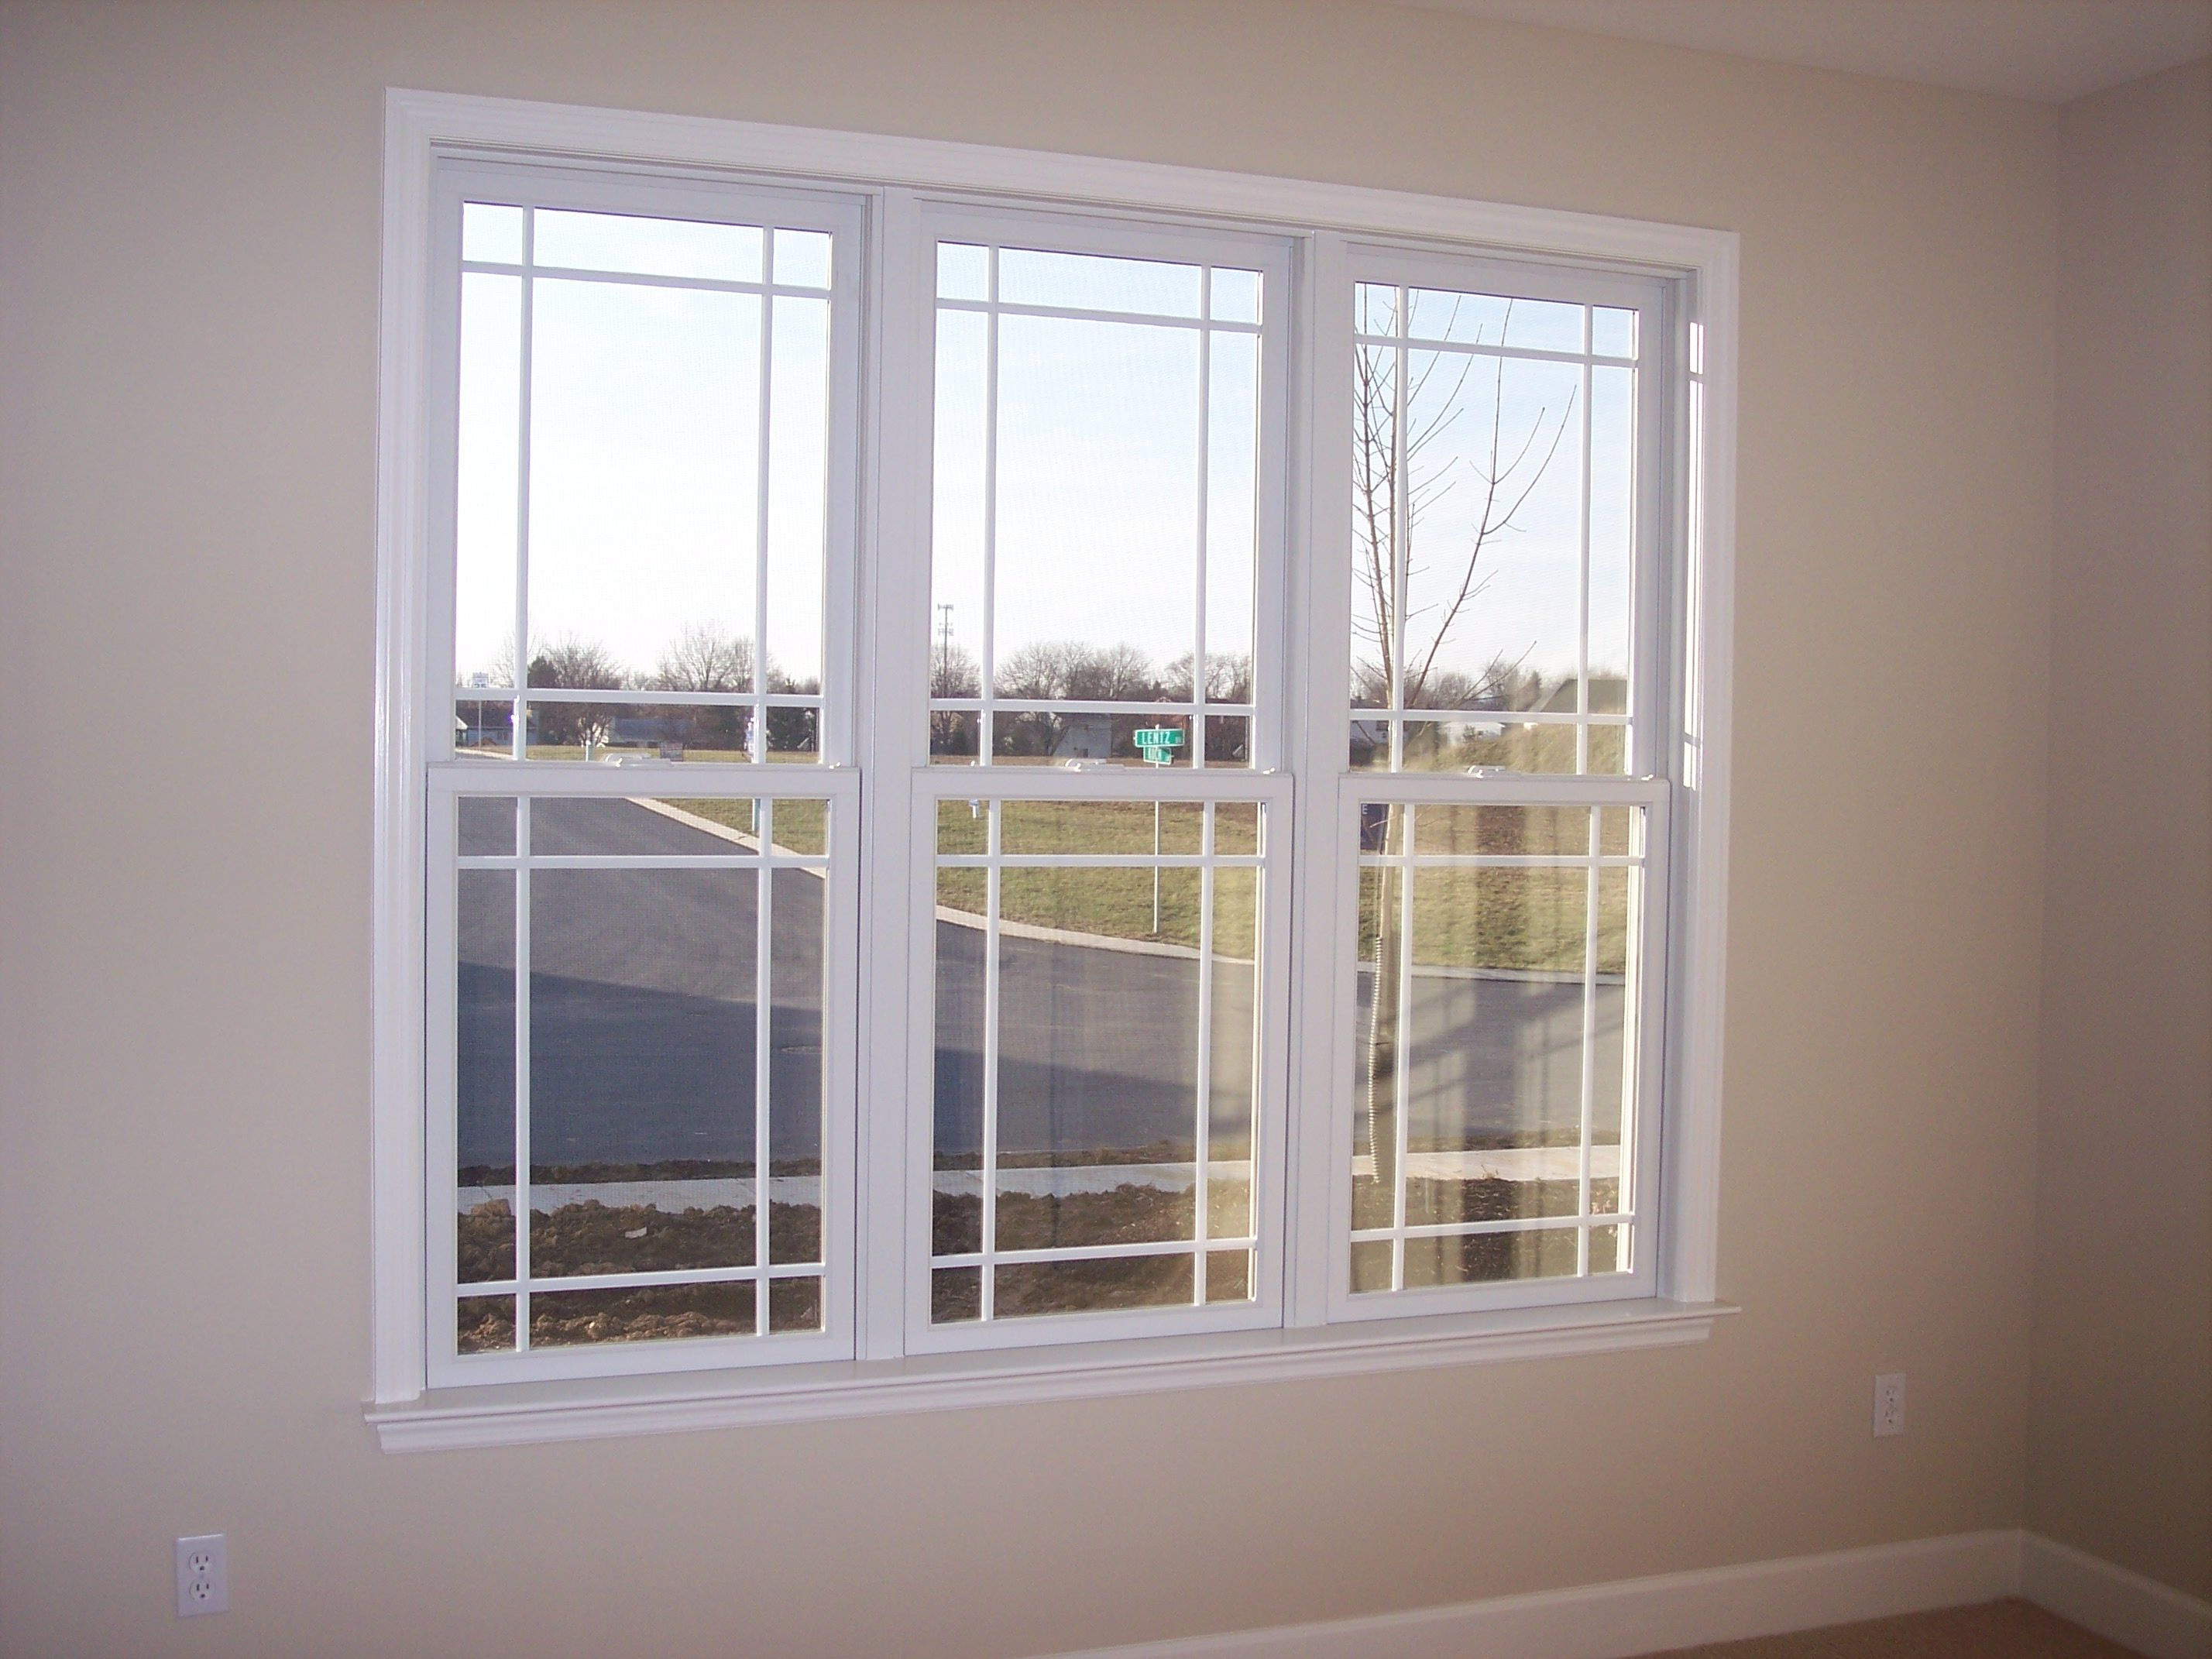 large windows | Window designs for homes window pictures Window ...